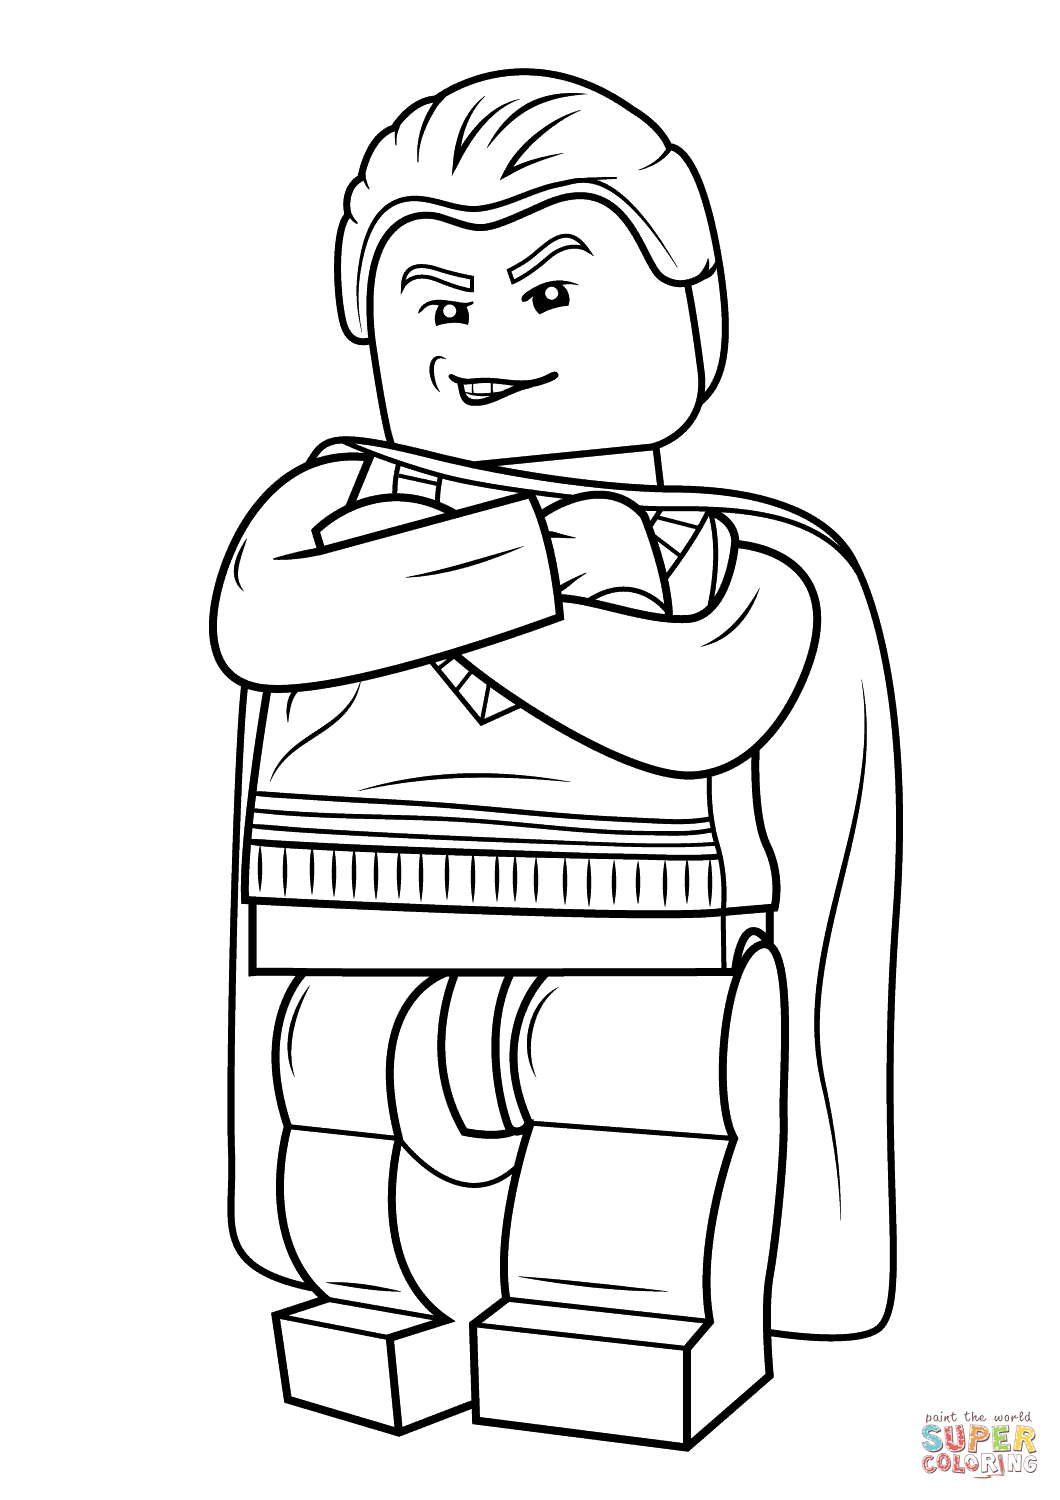 Lego Draco Malfoy Coloring Page